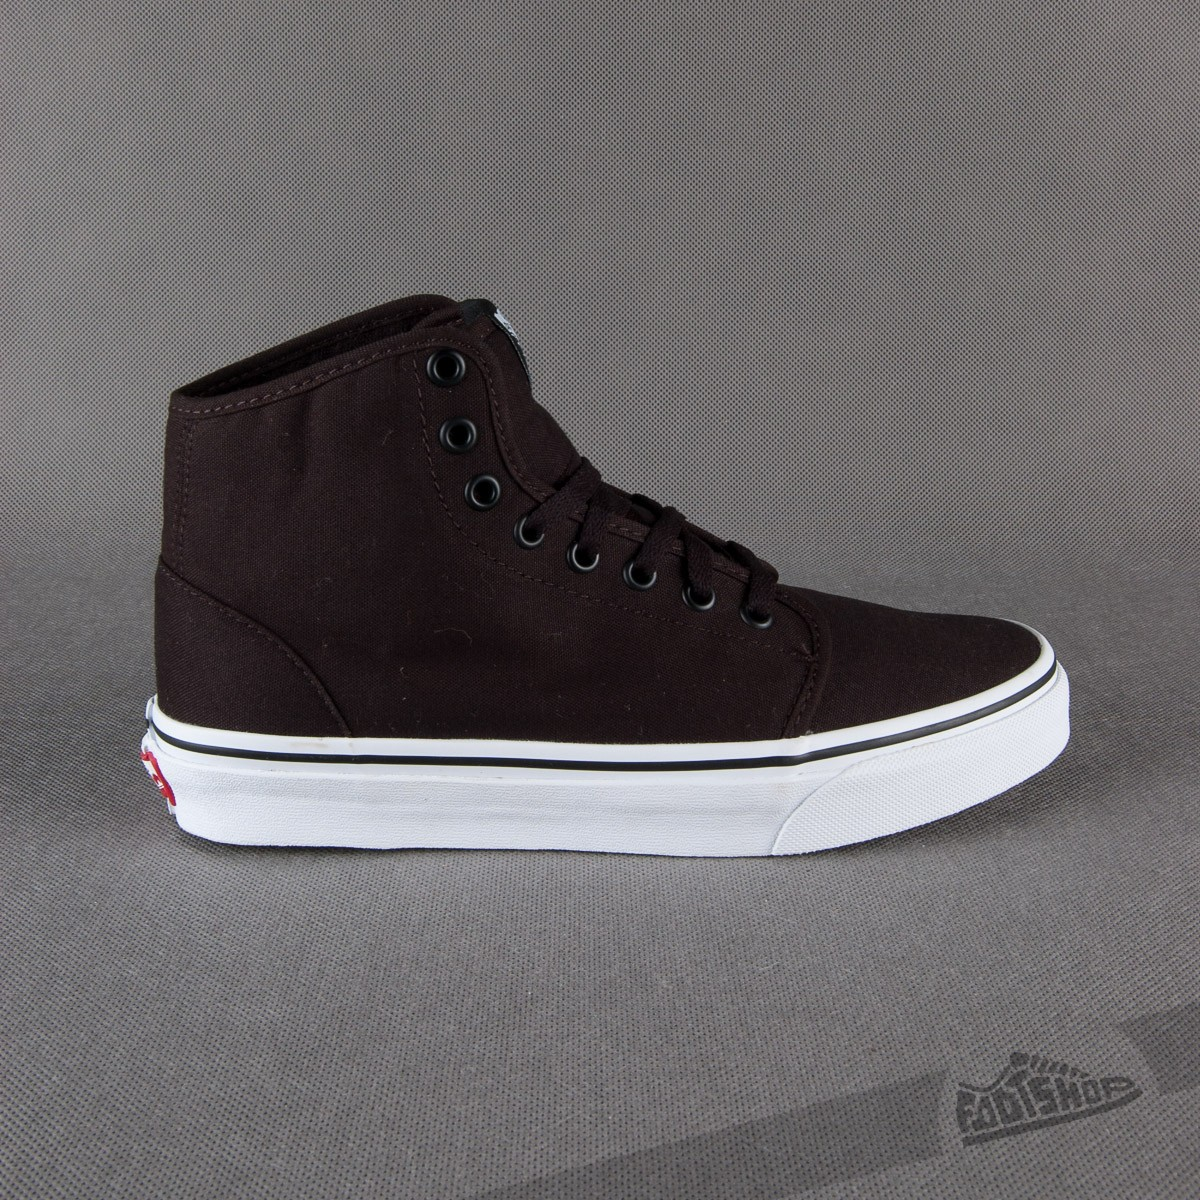 78d0740f1678 Vans 106 HI Black True White